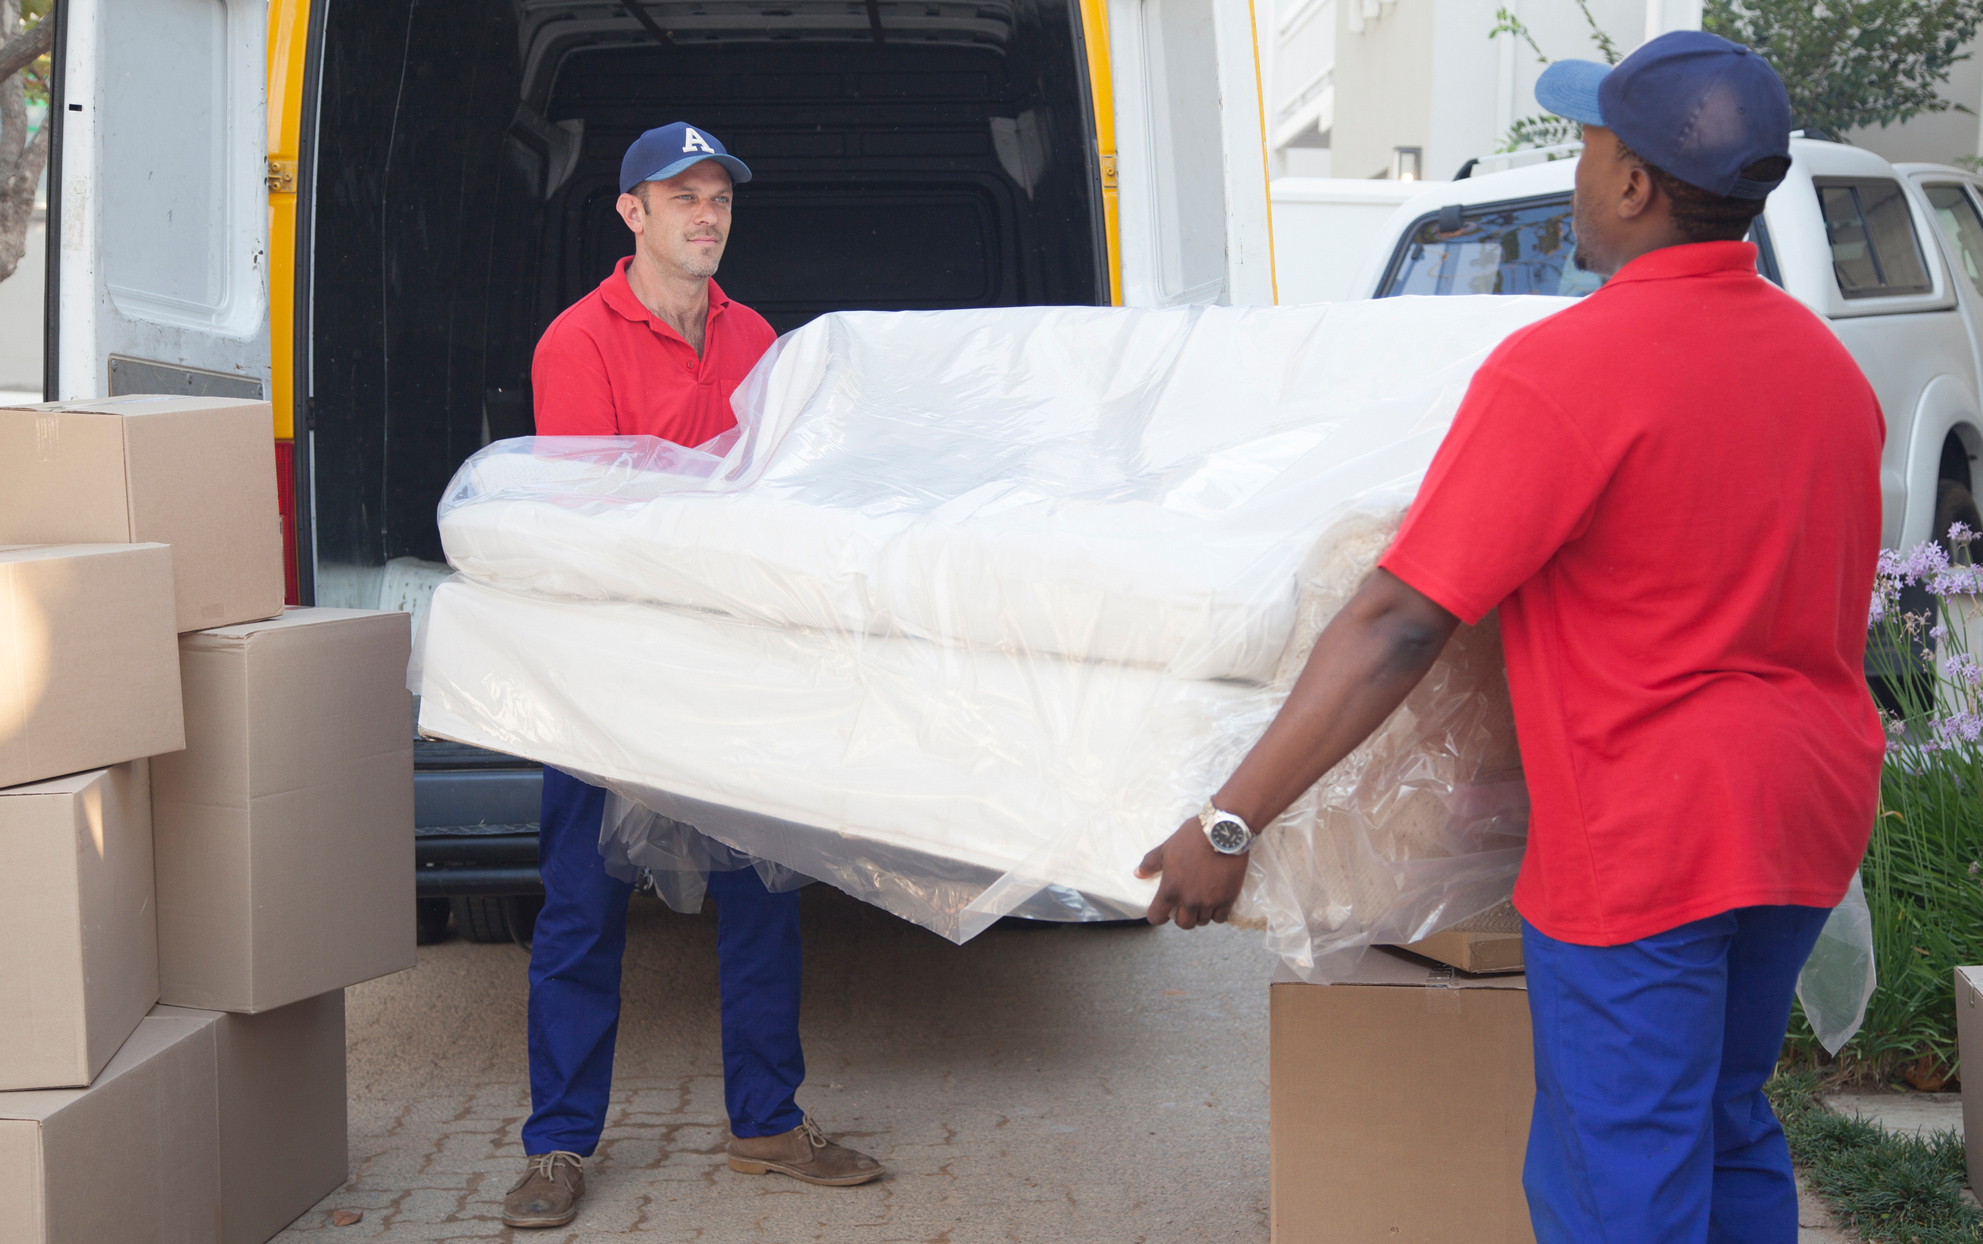 Two men delivering a white sofa